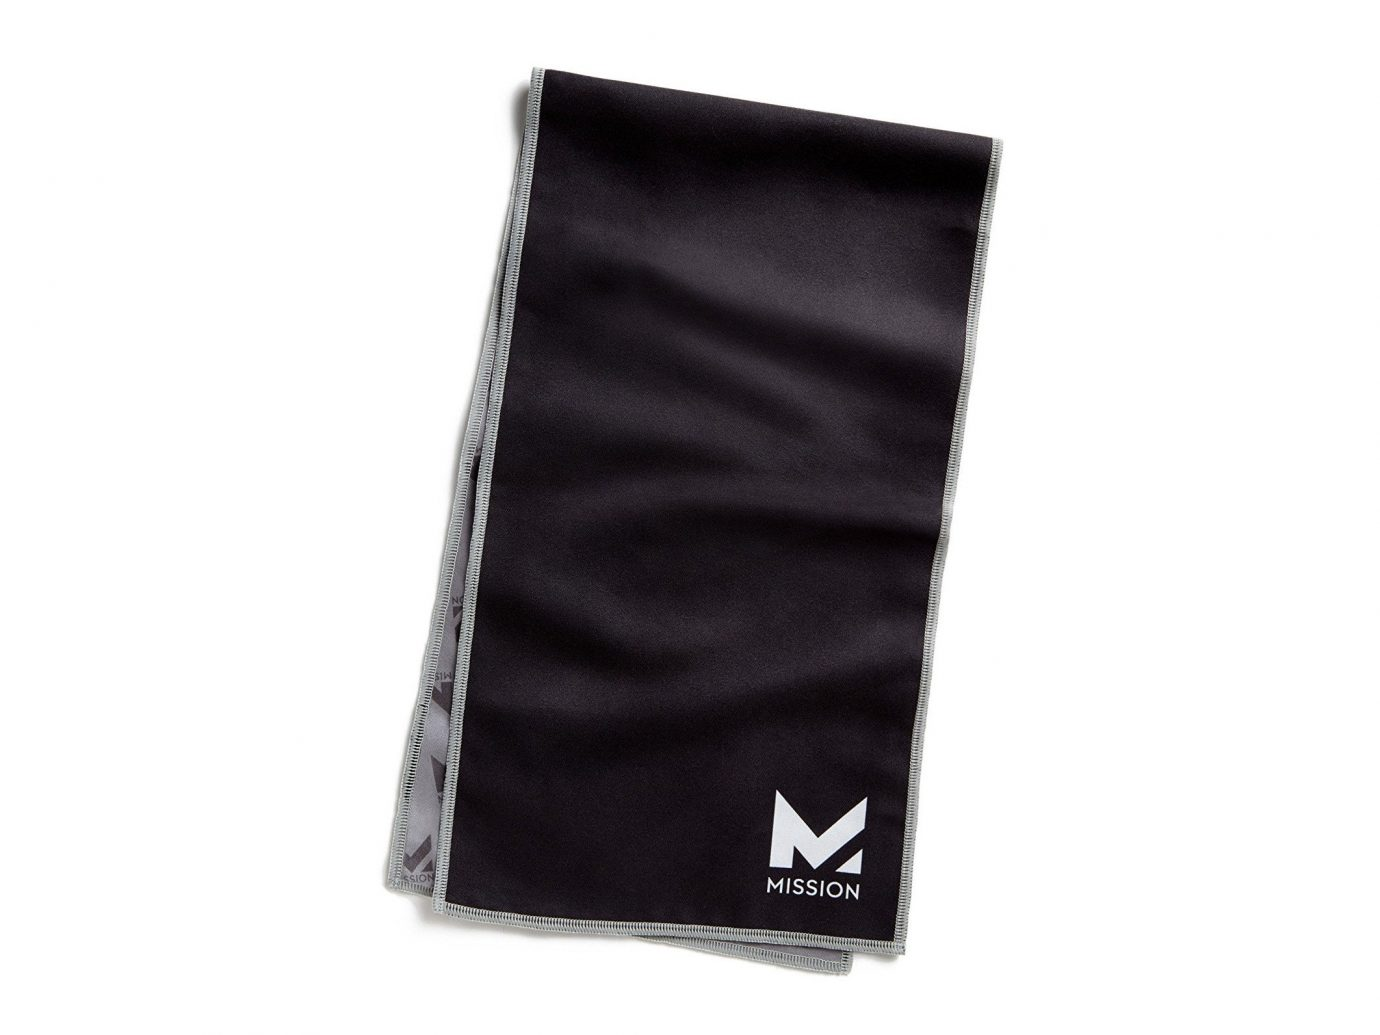 Travel Tips black product case